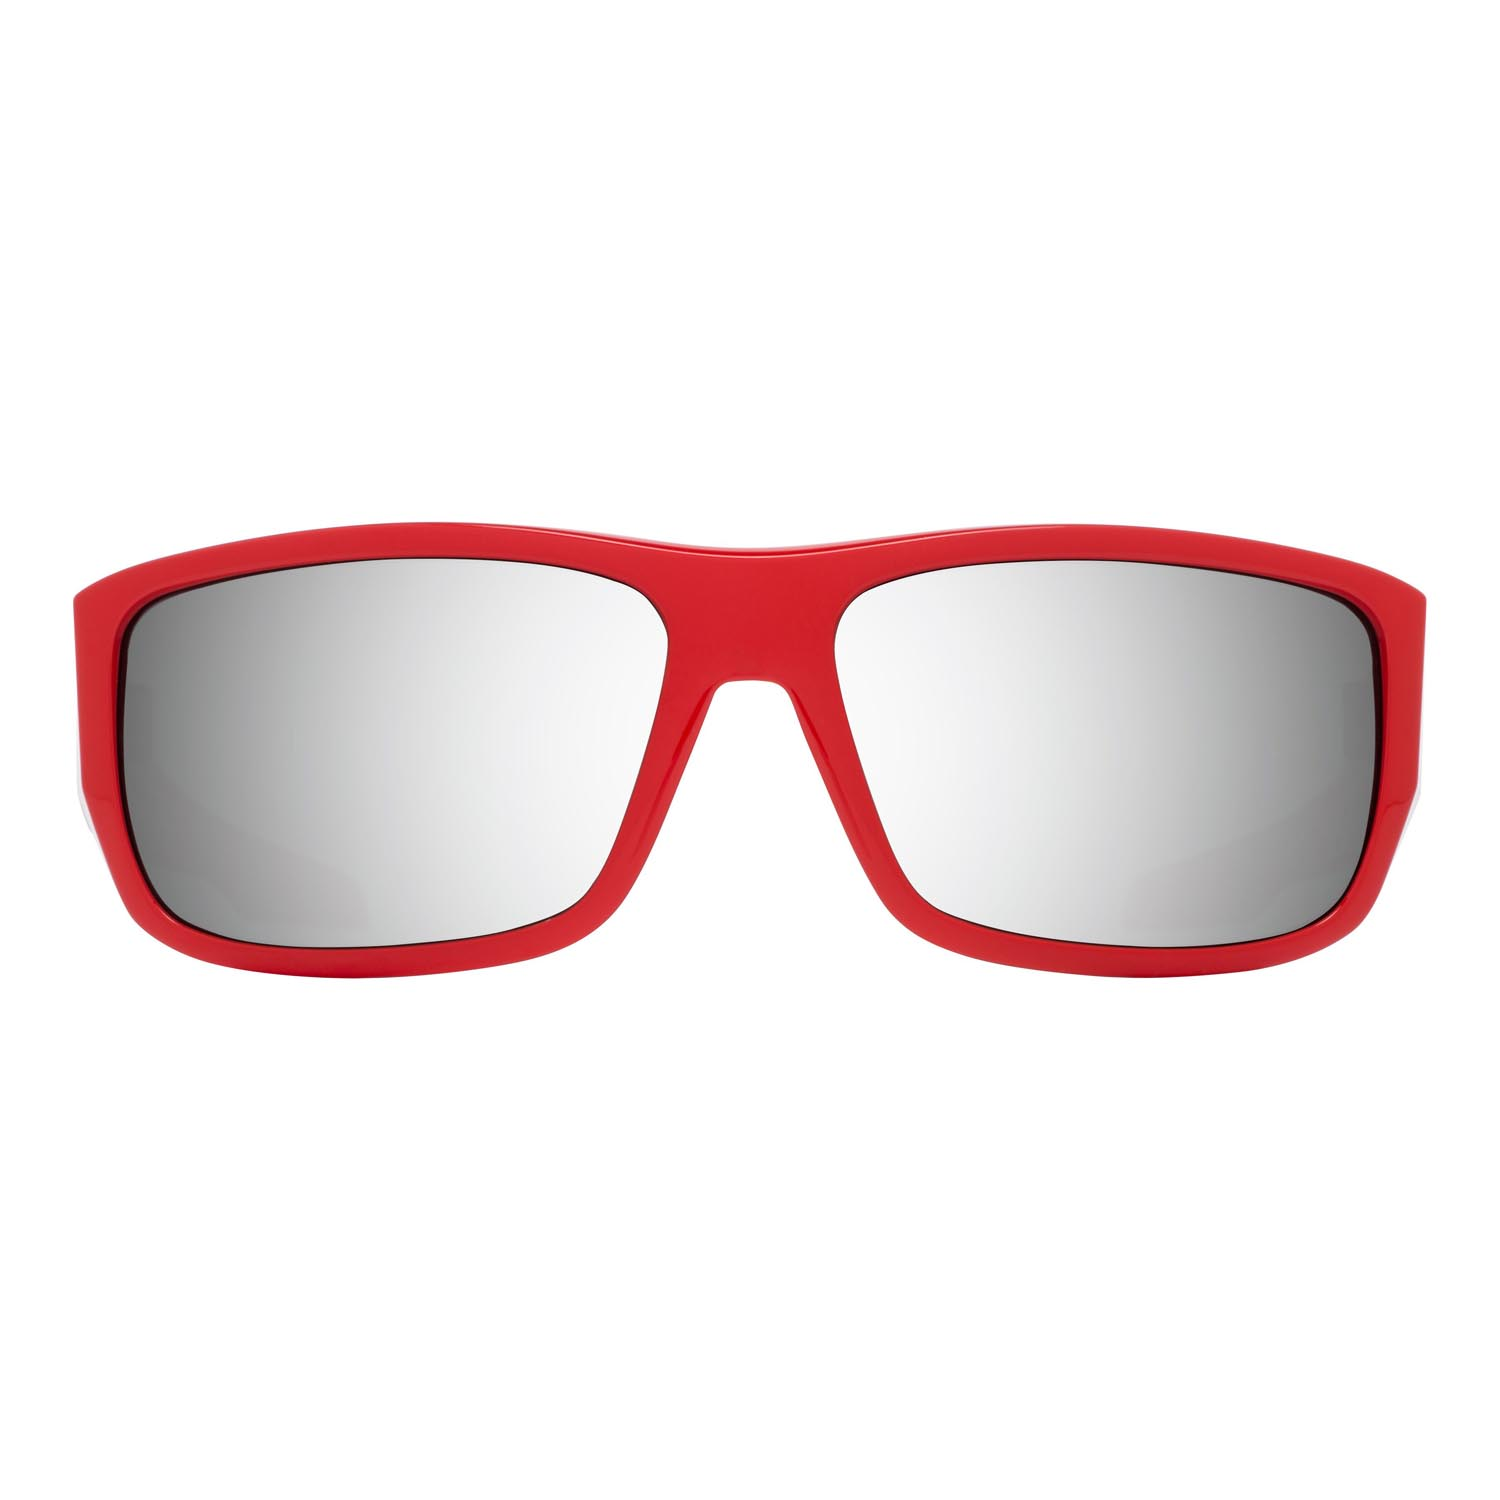 Spy Sunglasses MC3 in classic red with gray silver mirror lenses